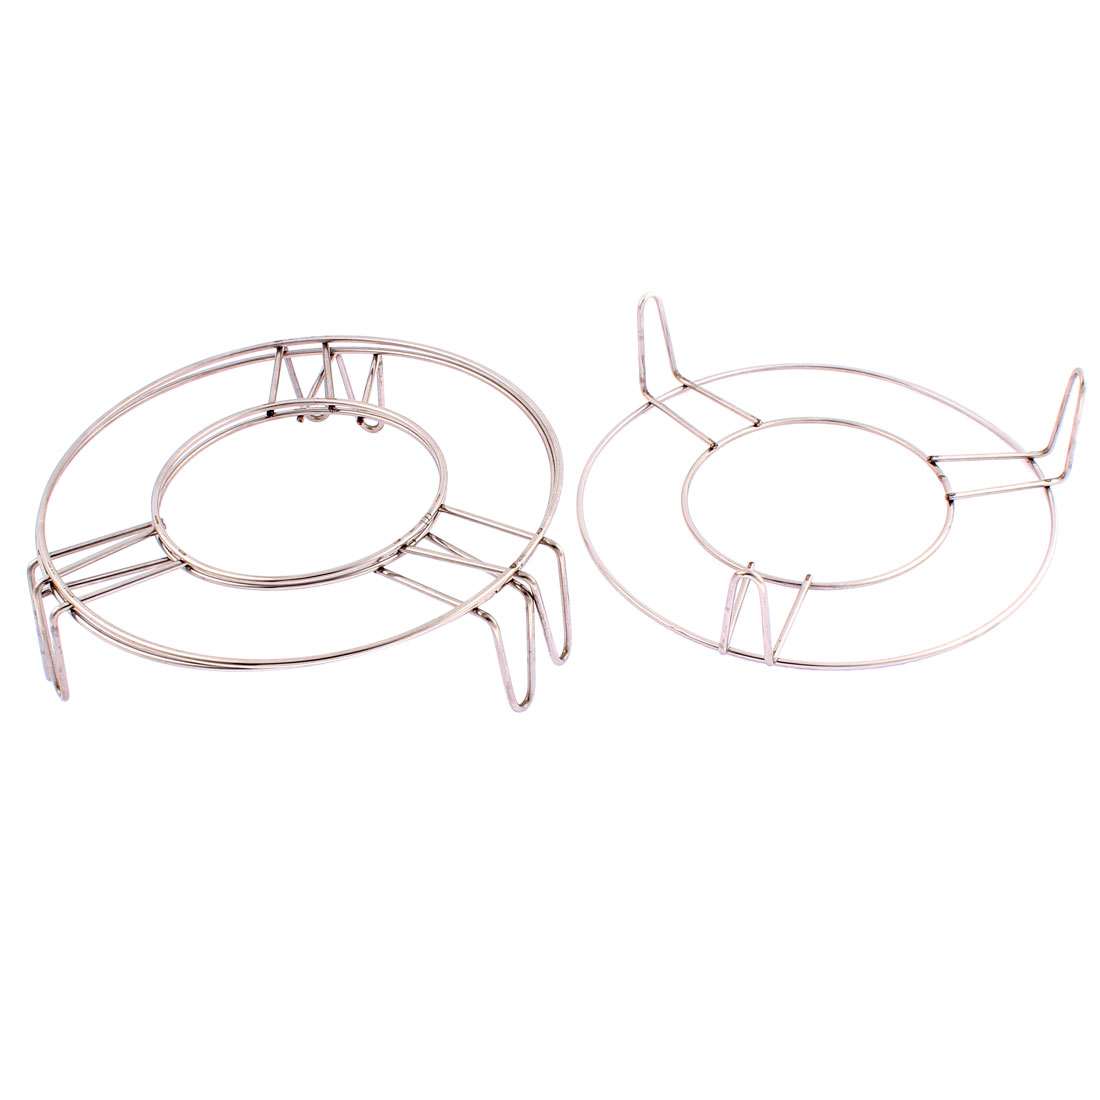 Stainless Steel 3 Legs Food Steaming Rack Stand 7 Inch x 2 Inch 3 Pcs